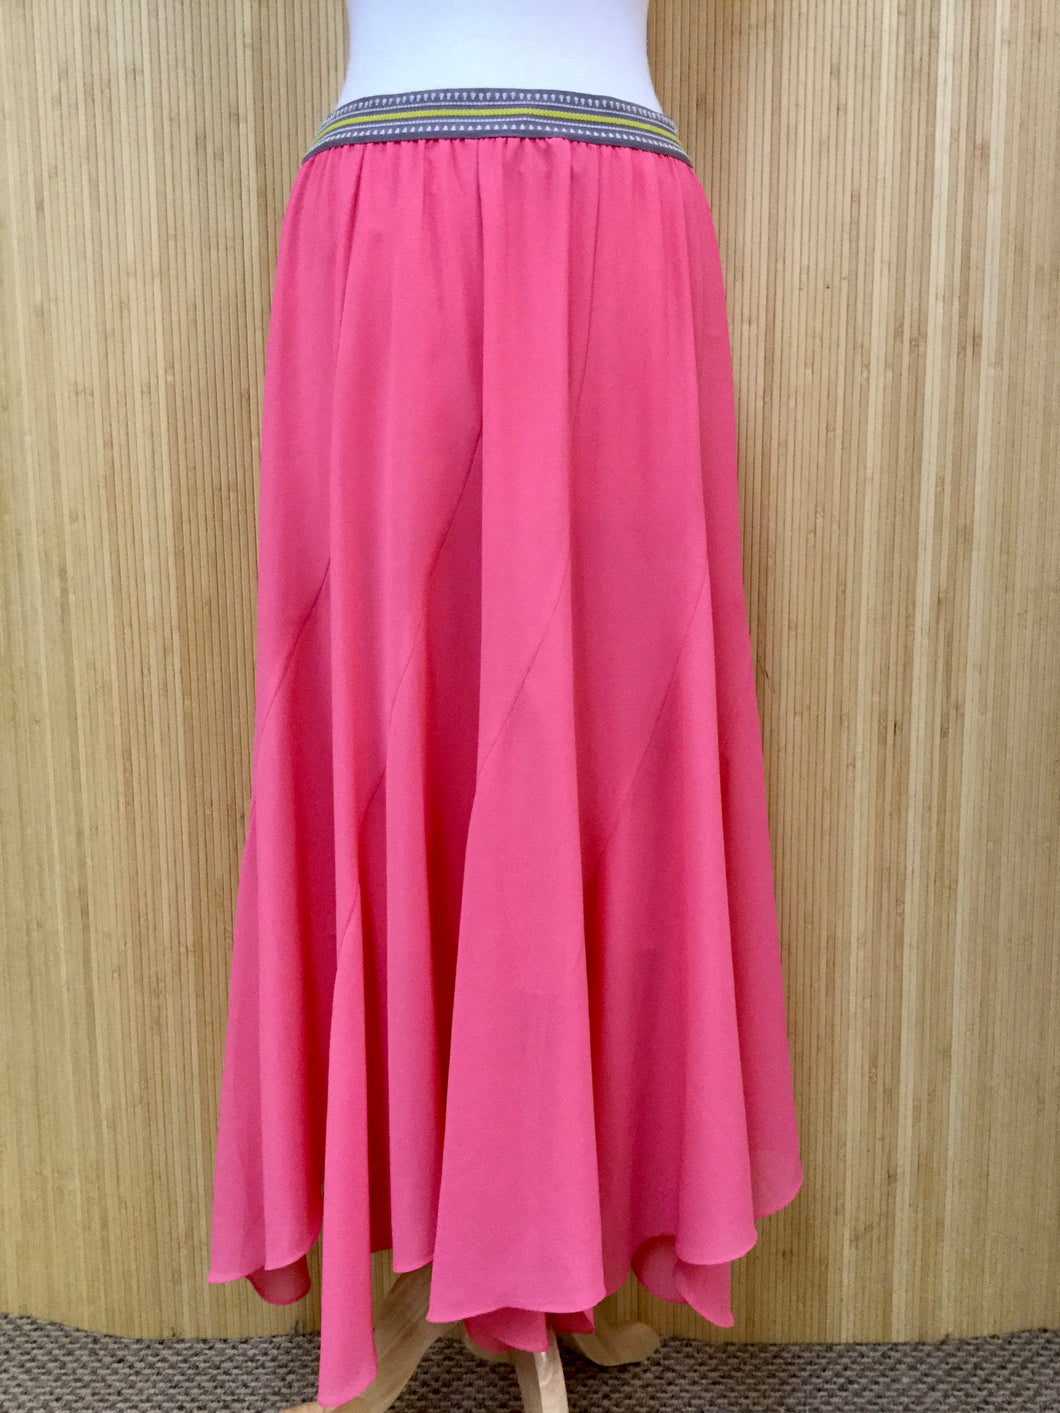 Vanessa Virginia Chiffon Skirt (M)